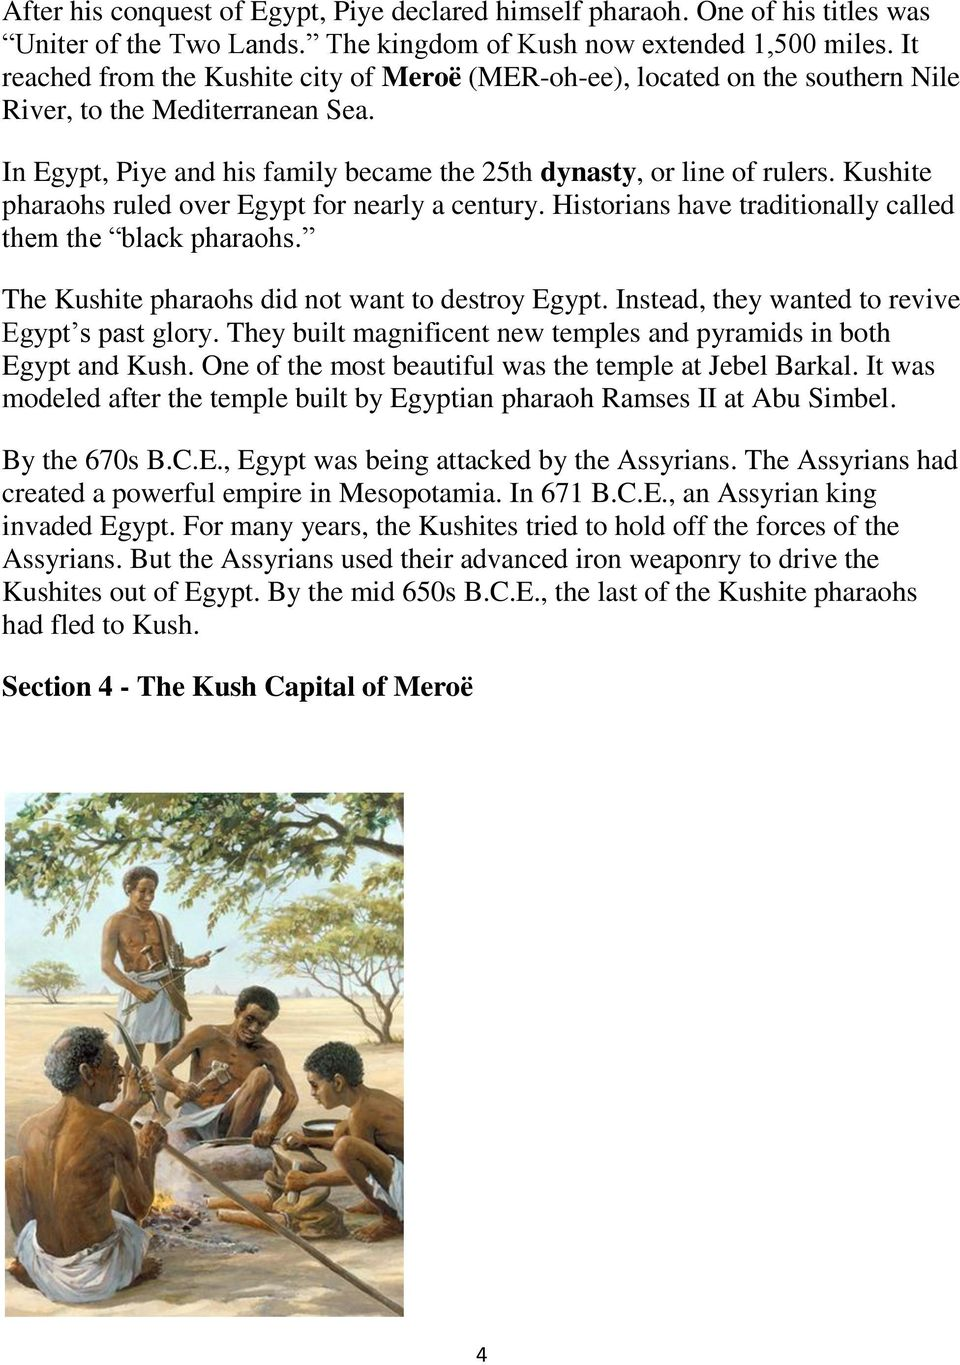 Kushite pharaohs ruled over Egypt for nearly a century. Historians have traditionally called them the black pharaohs. The Kushite pharaohs did not want to destroy Egypt.